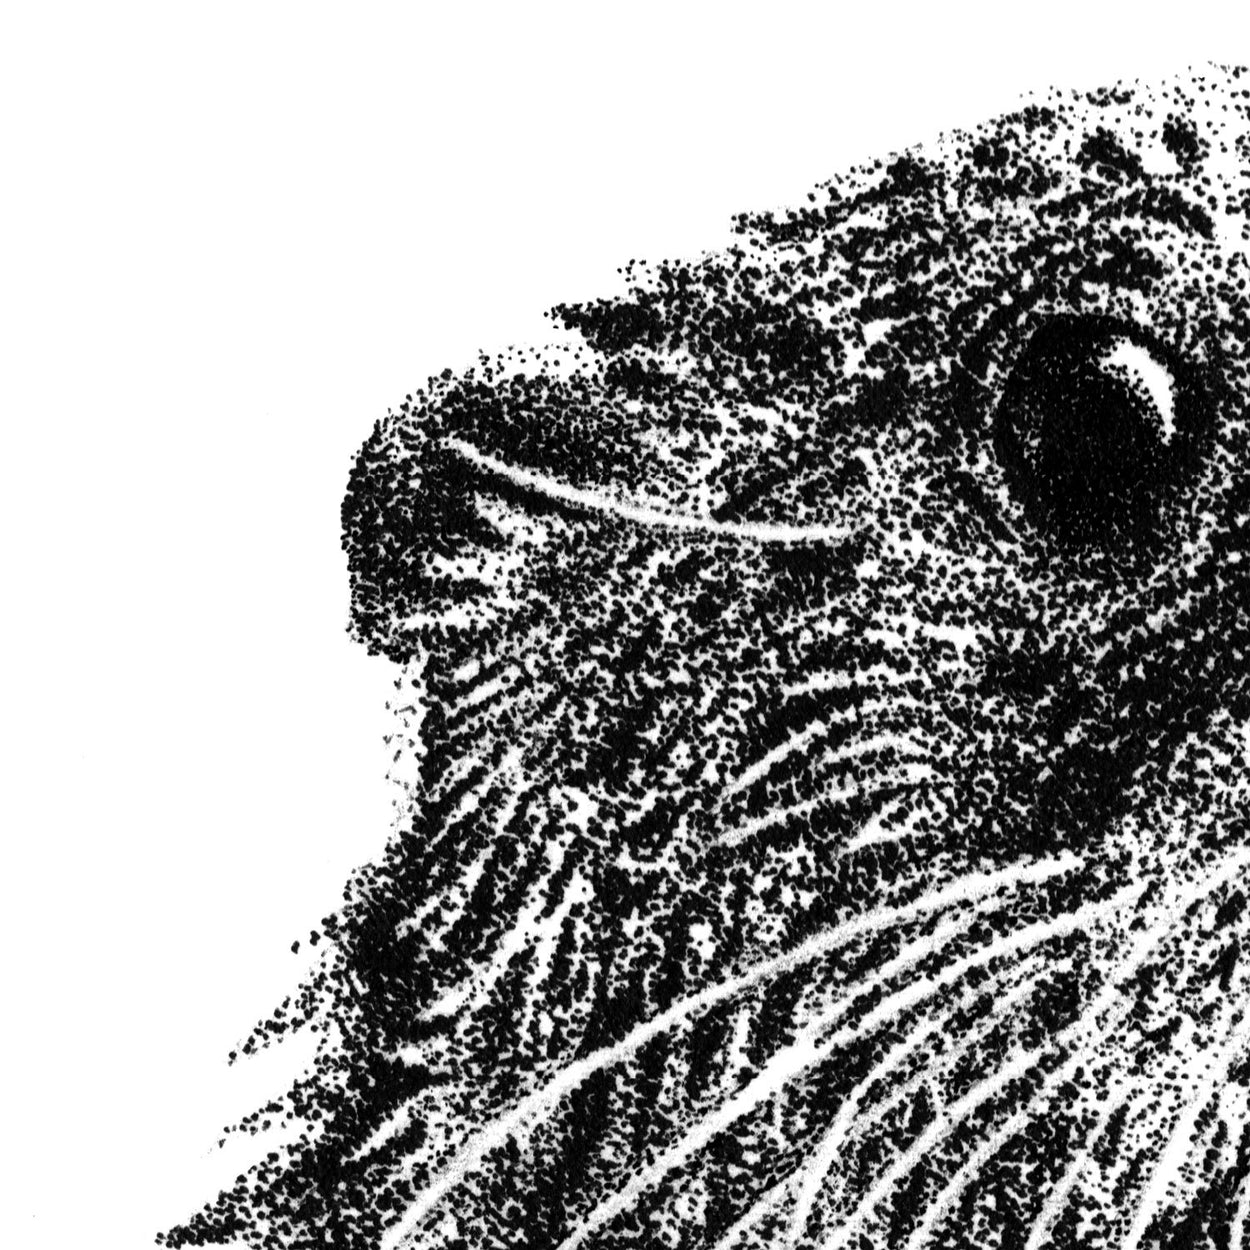 Otter Pen Stippling Close-up - The Thriving Wild